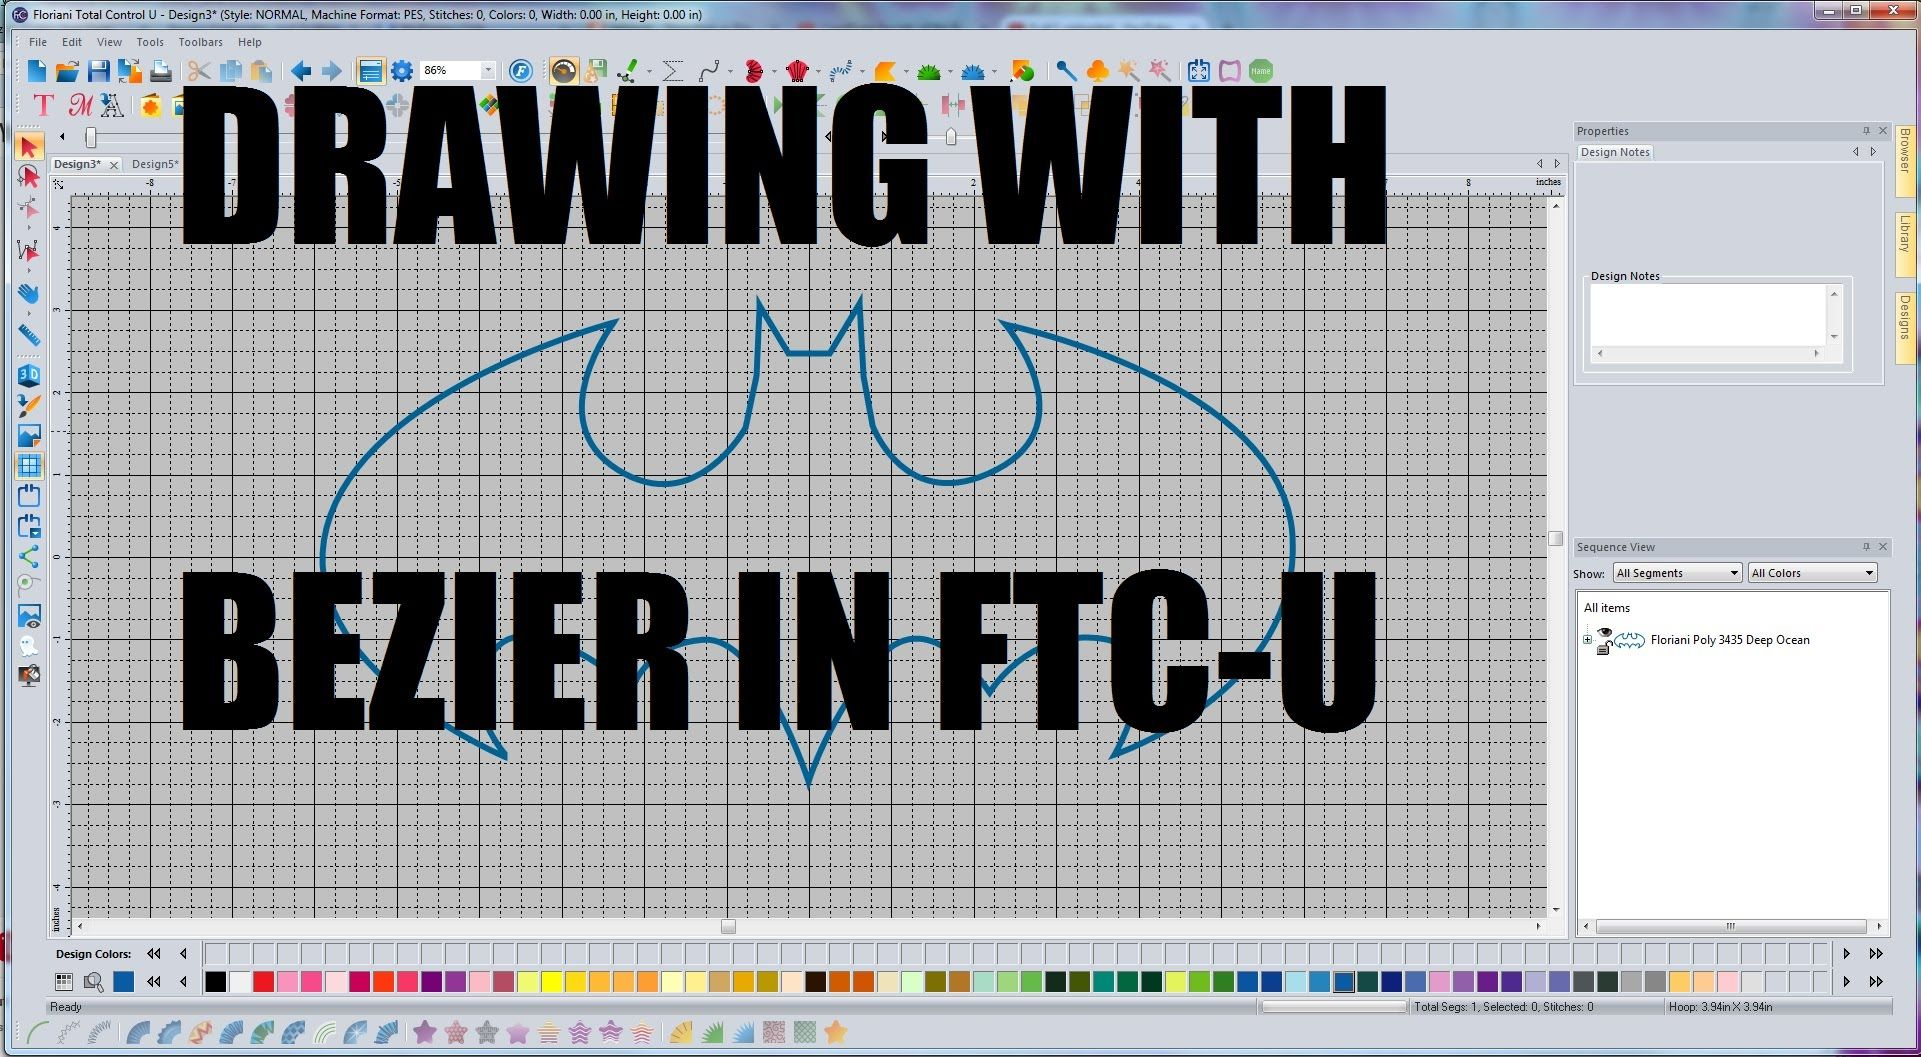 Floriani total control u drawing with bezier machine floriani total control u drawing with bezier nvjuhfo Choice Image